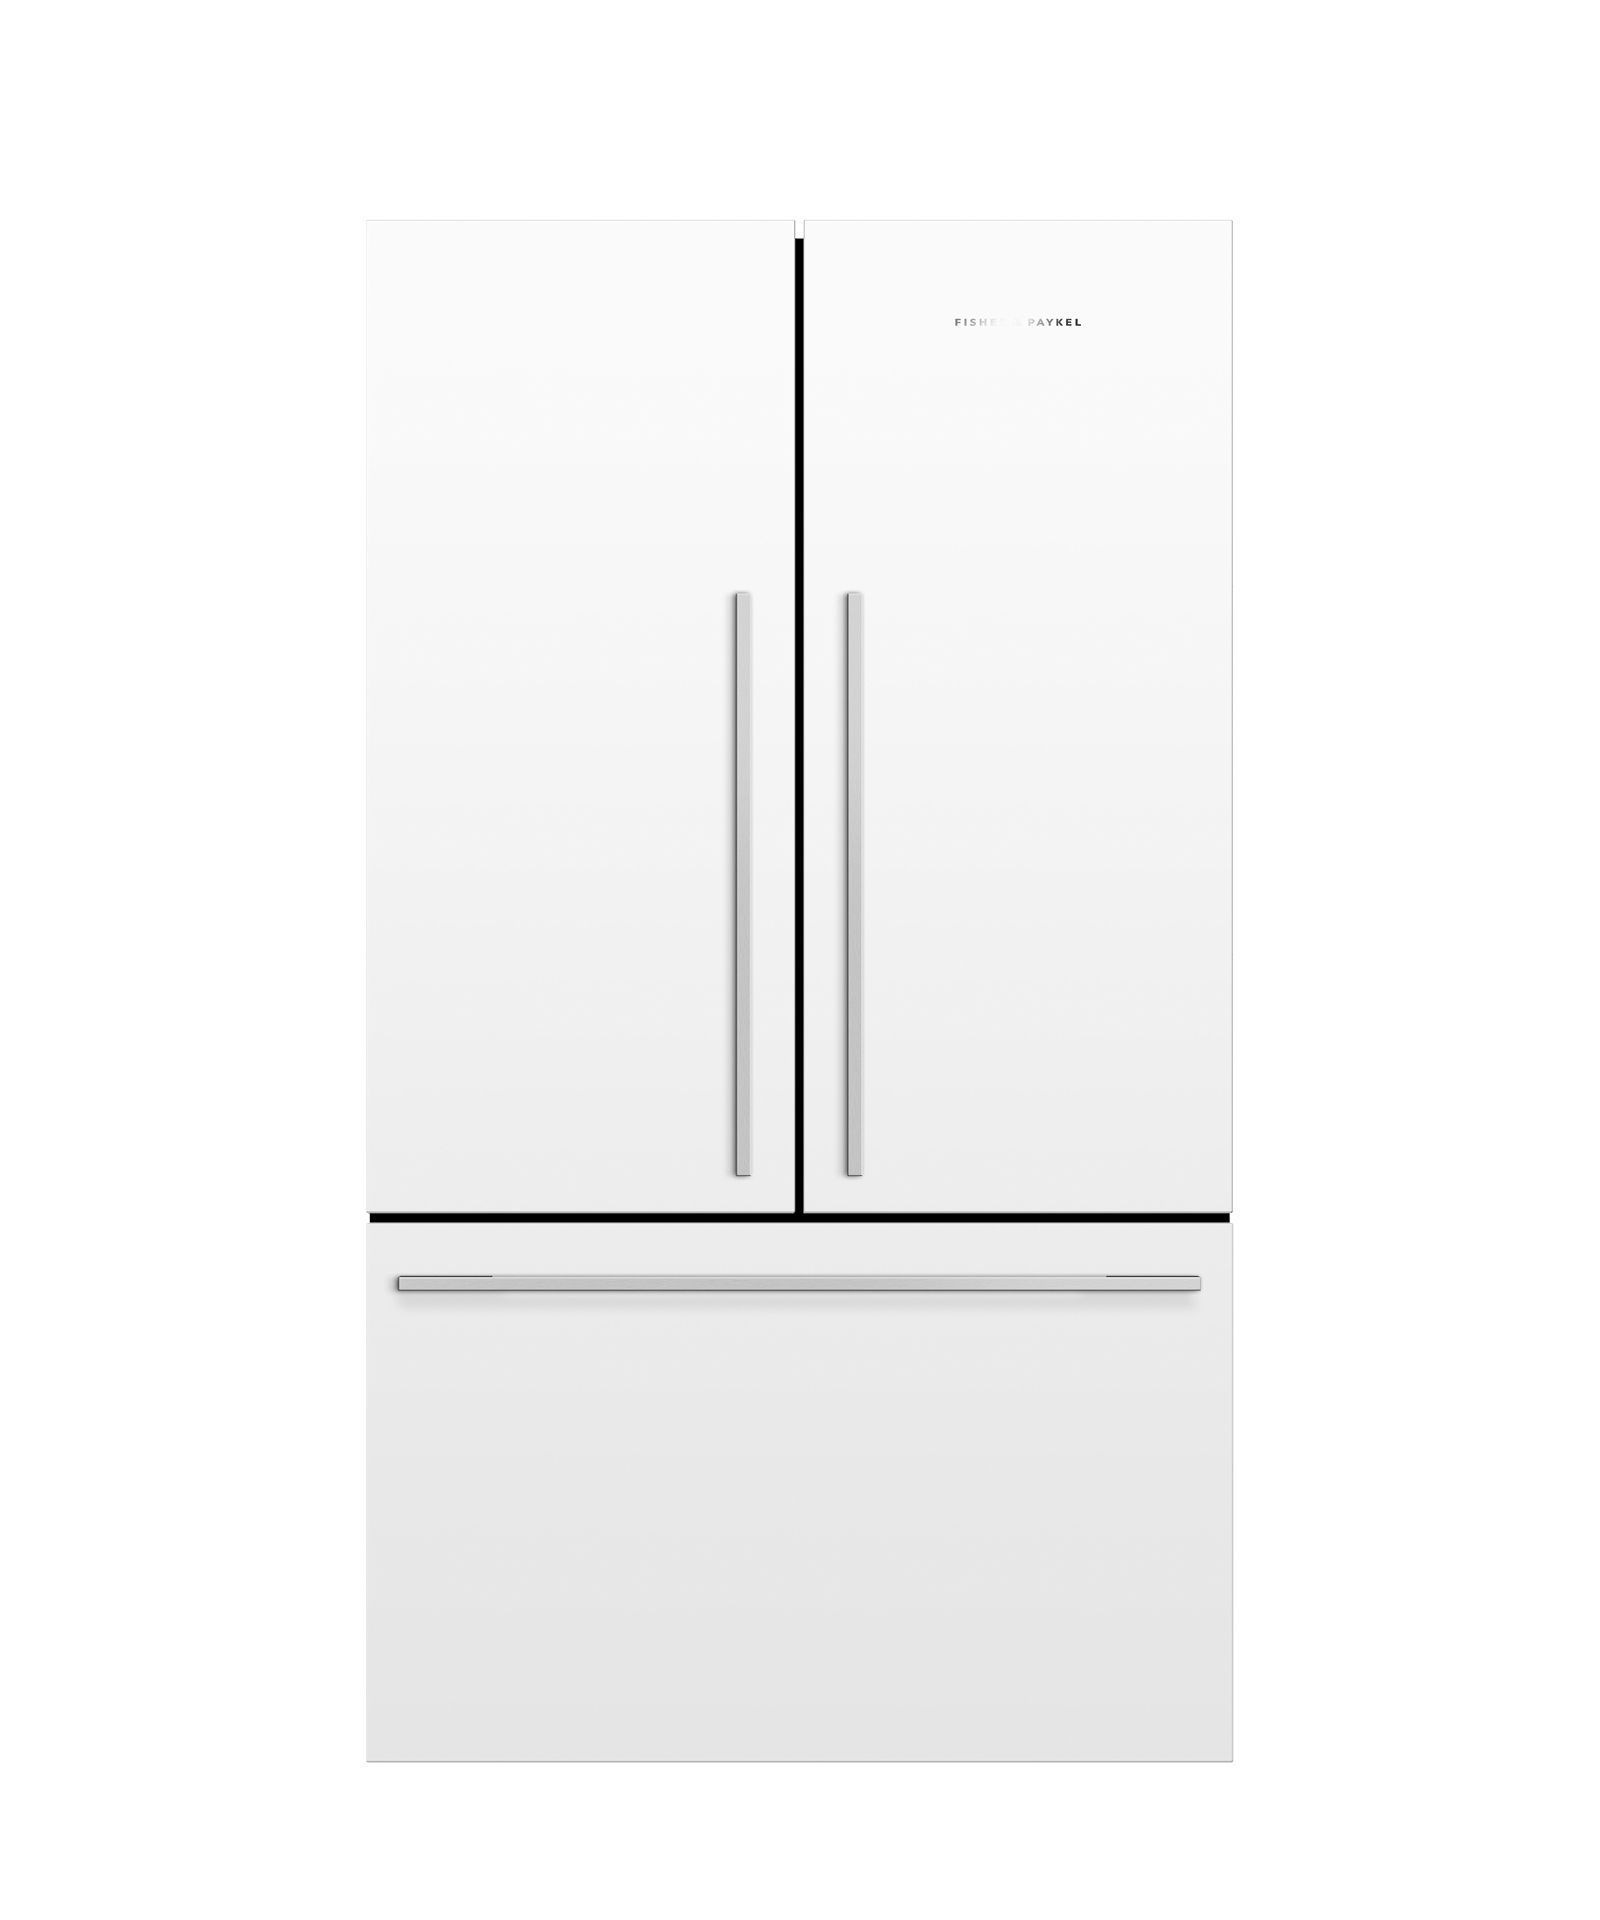 white french door refrigerator. RF201ADW5 - ActiveSmart™ Refrigerator 20.1 Cu. Ft. Counter Depth French Door White